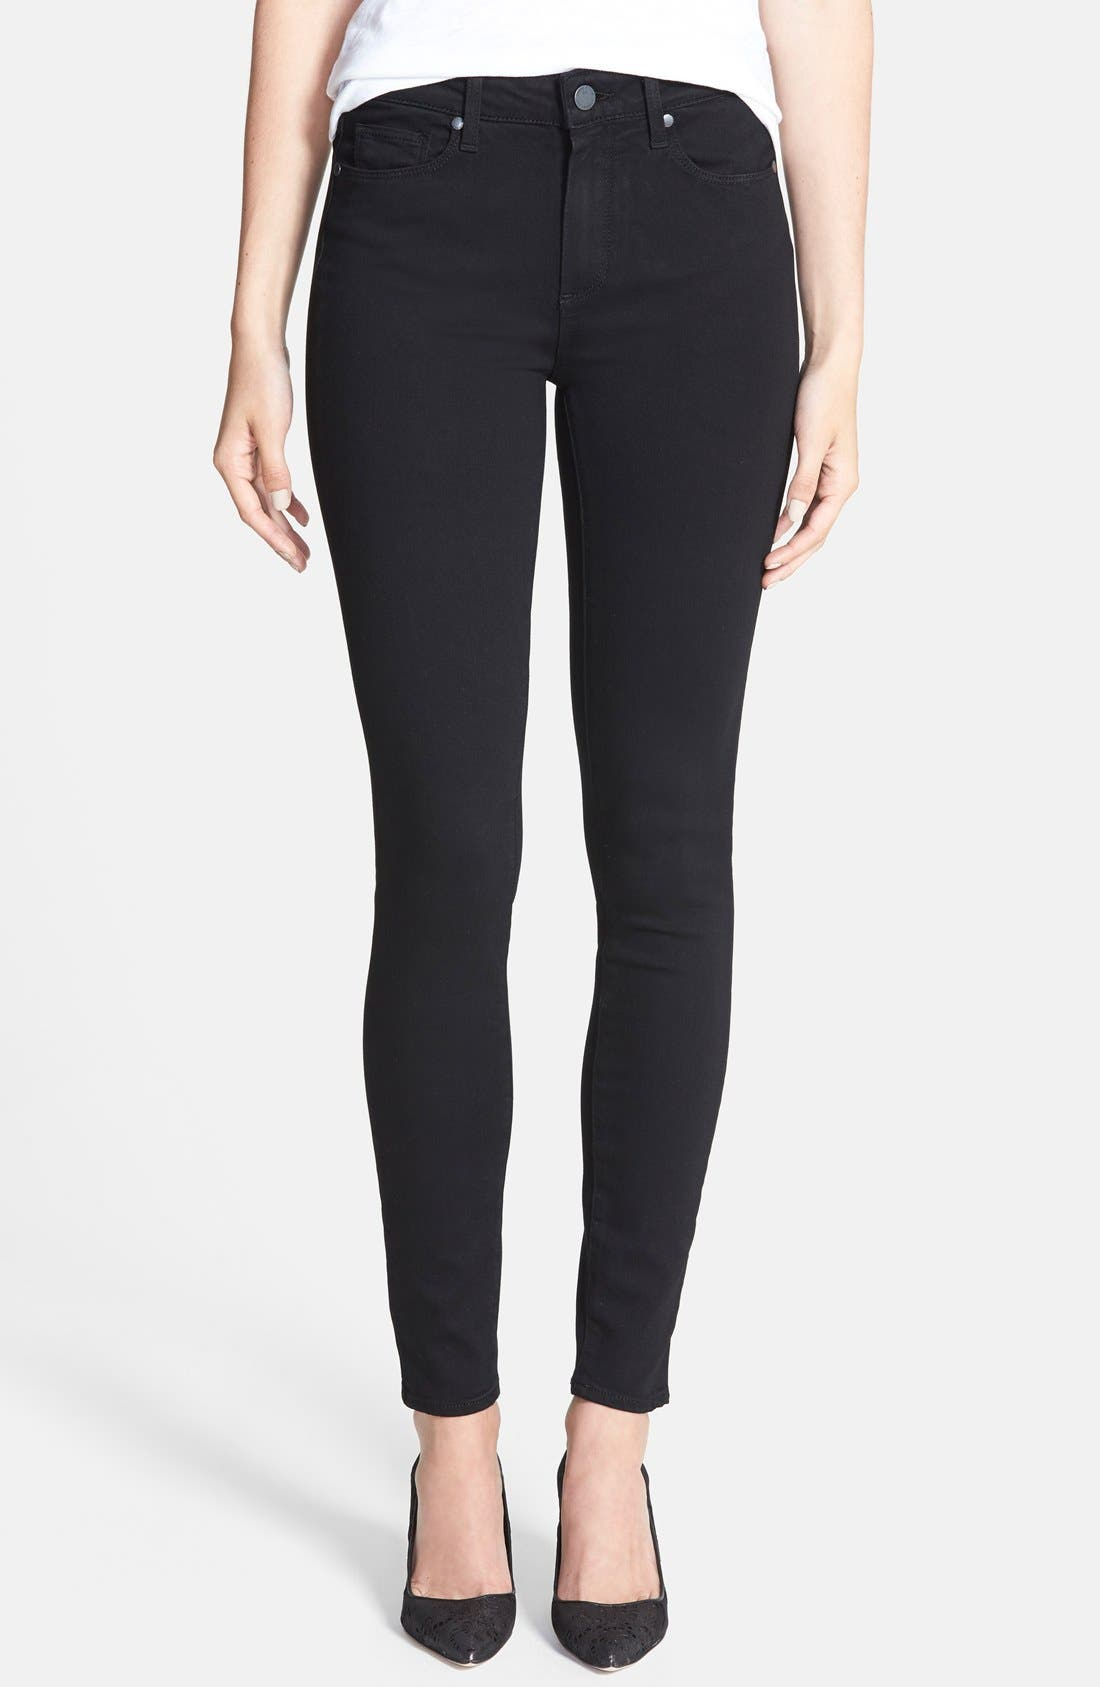 Transcend - Hoxton High Waist Ultra Skinny Stretch Jeans,                             Main thumbnail 1, color,                             BLACK SHADOW